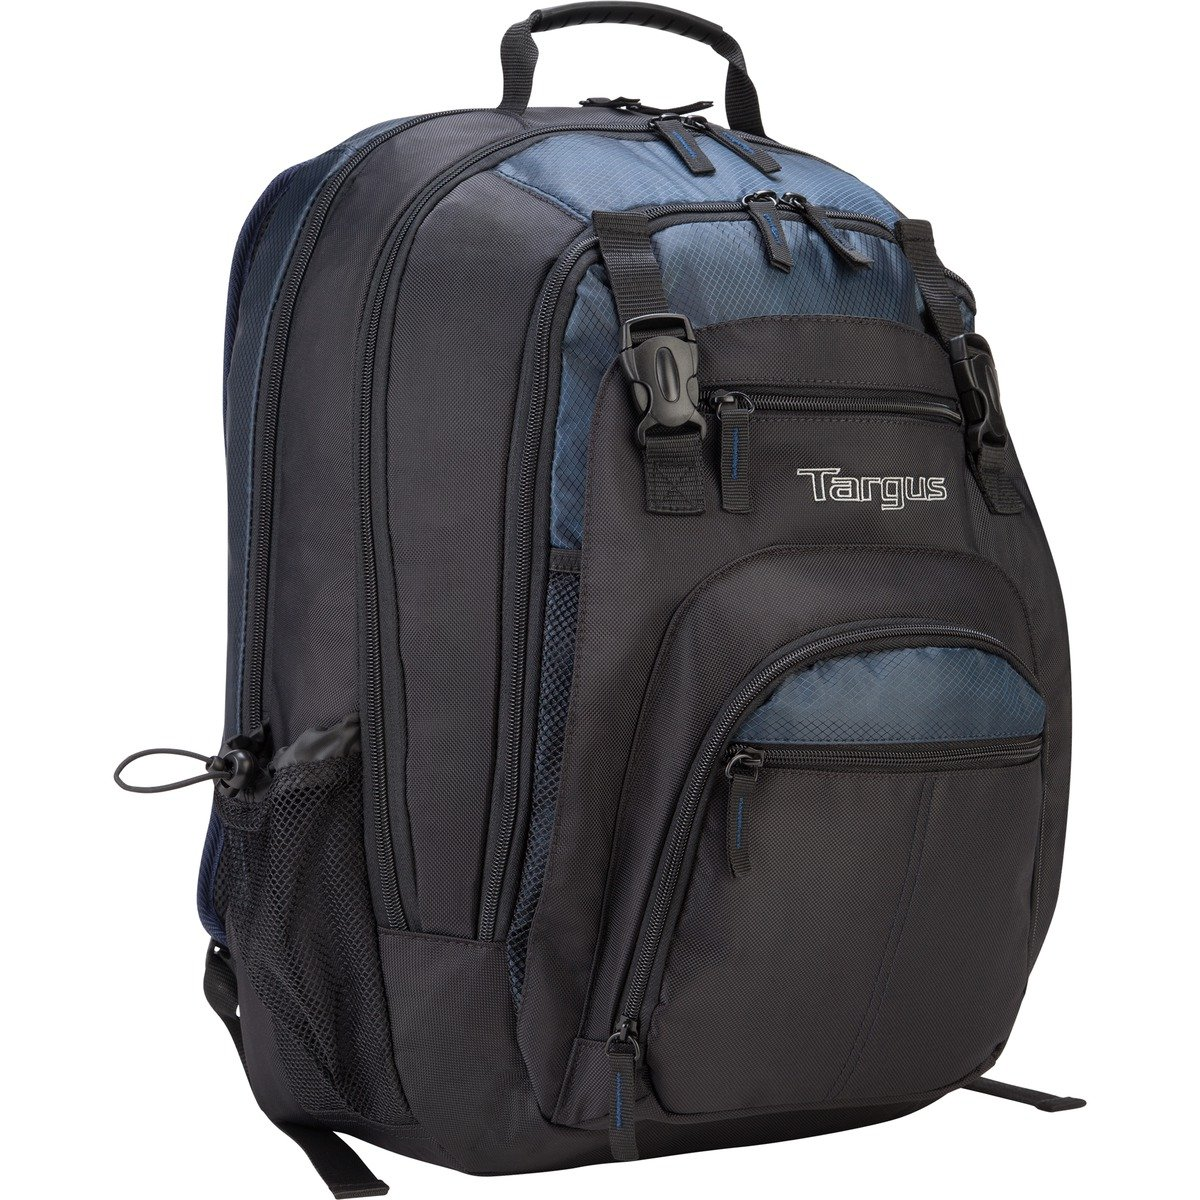 768b05469475 Targus XL Backpack for 17-Inch Laptops, Black with Blue Accents (TXL617)